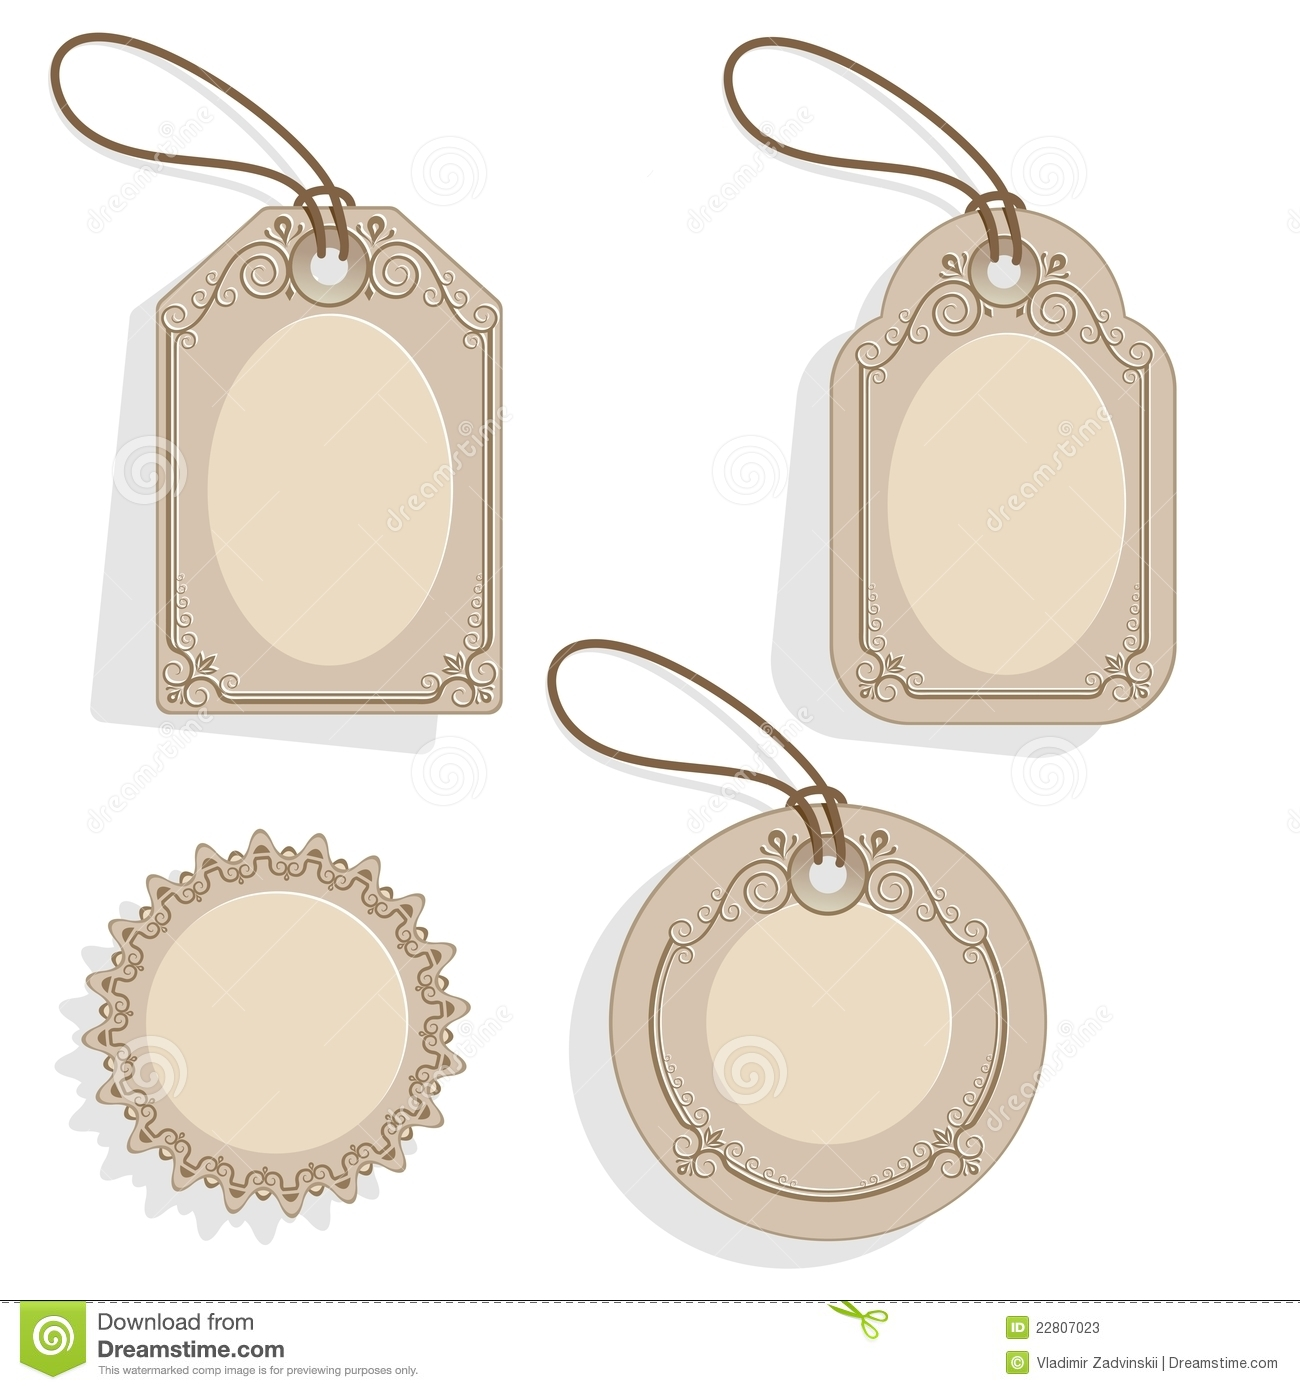 Pin Blank Price Tag Template on Pinterest